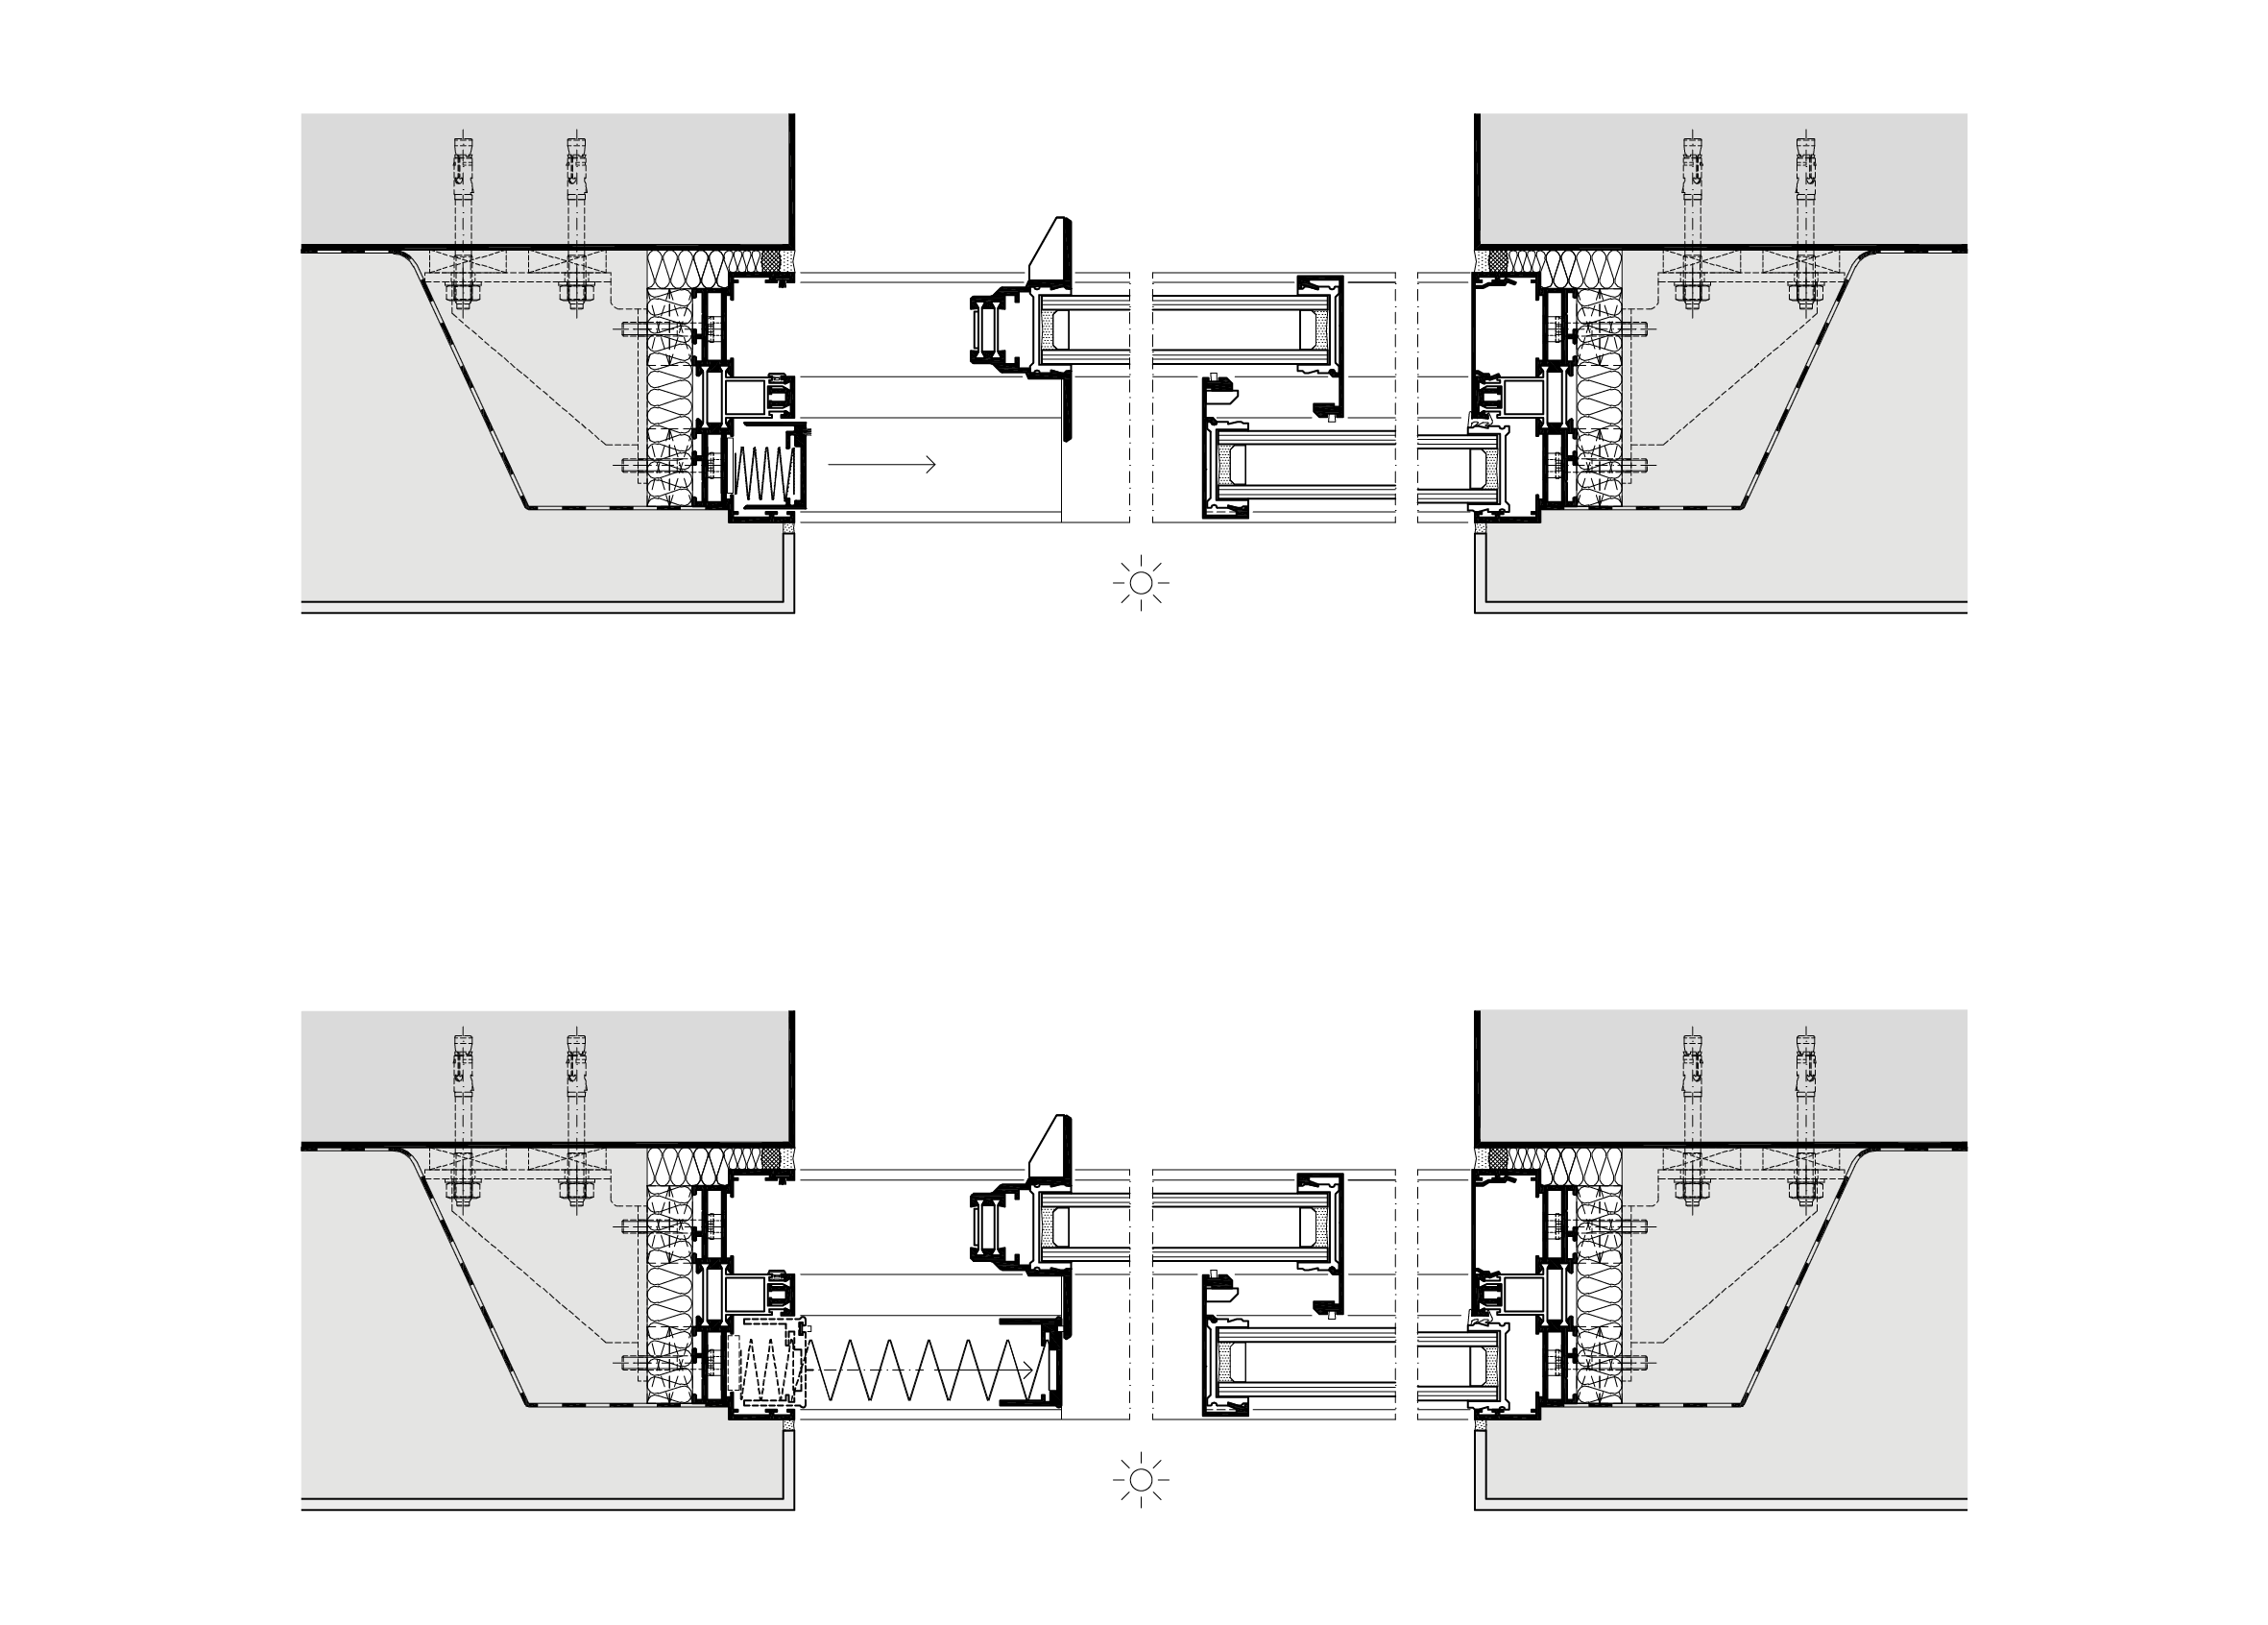 Technical Drawing Sky Frame Fly.png 2362x1692 Q90 Subsampling 2